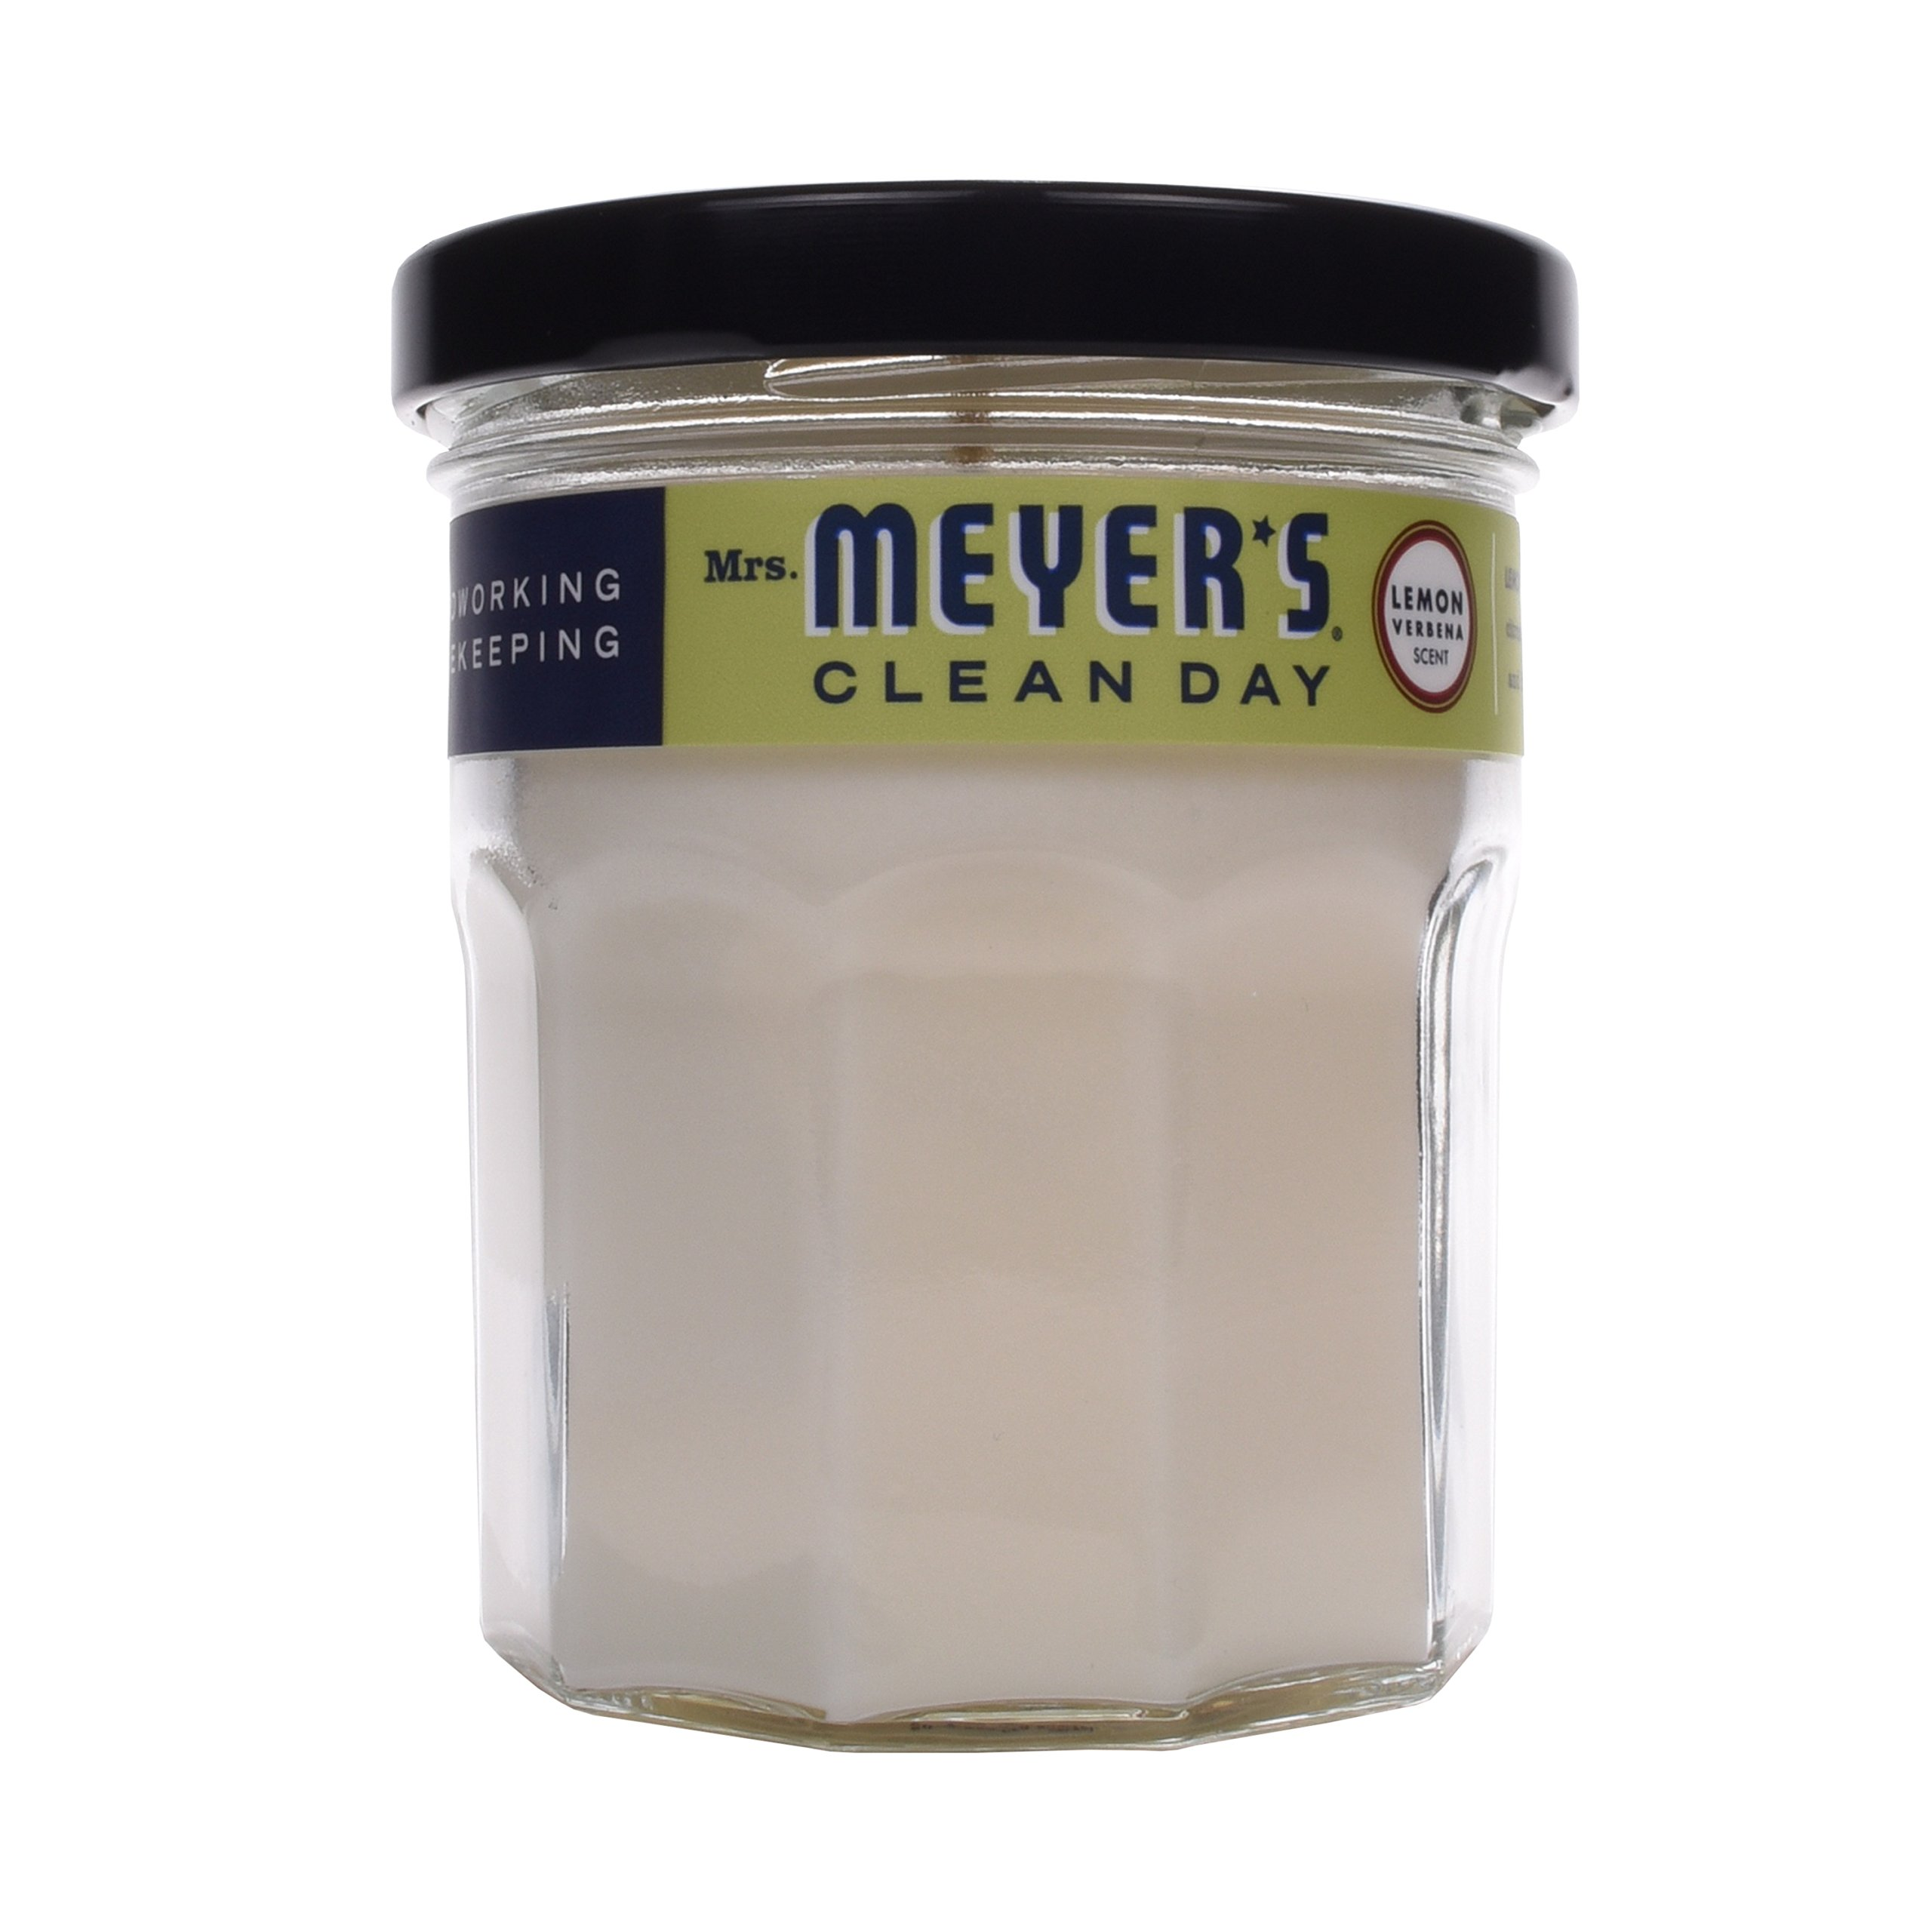 Mrs. Meyer's Clean Scented Soy Candle, Small Glass, Lemon Verbena, 4.9 oz